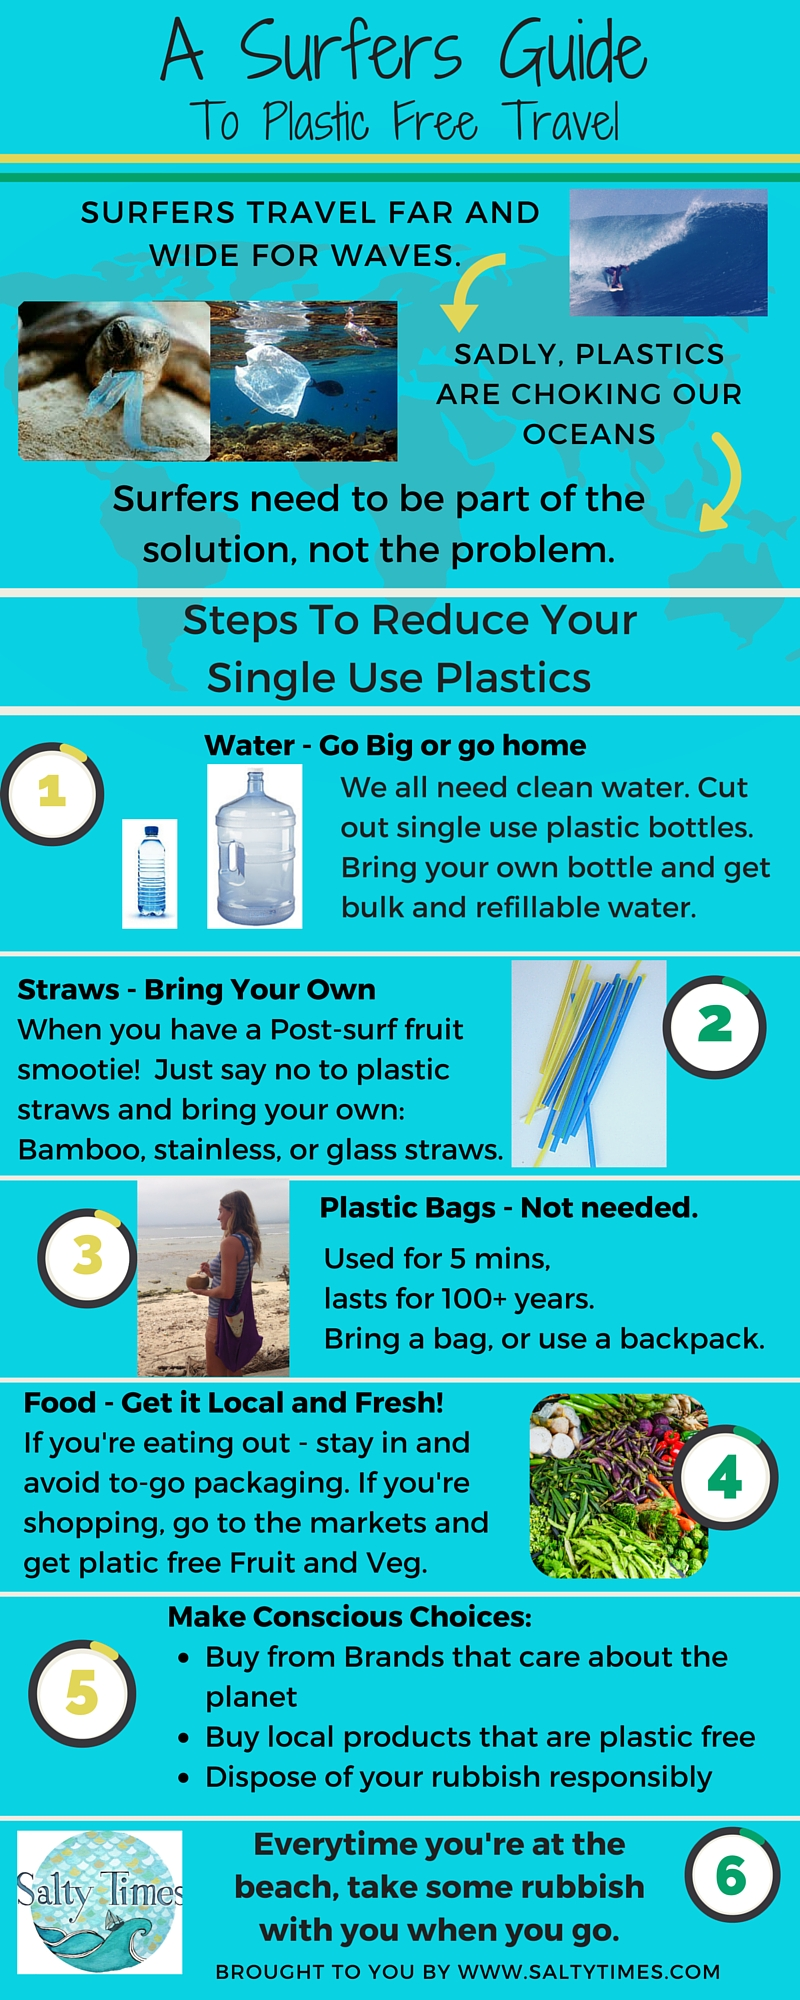 Surfers Guide to Plastic Free Travel